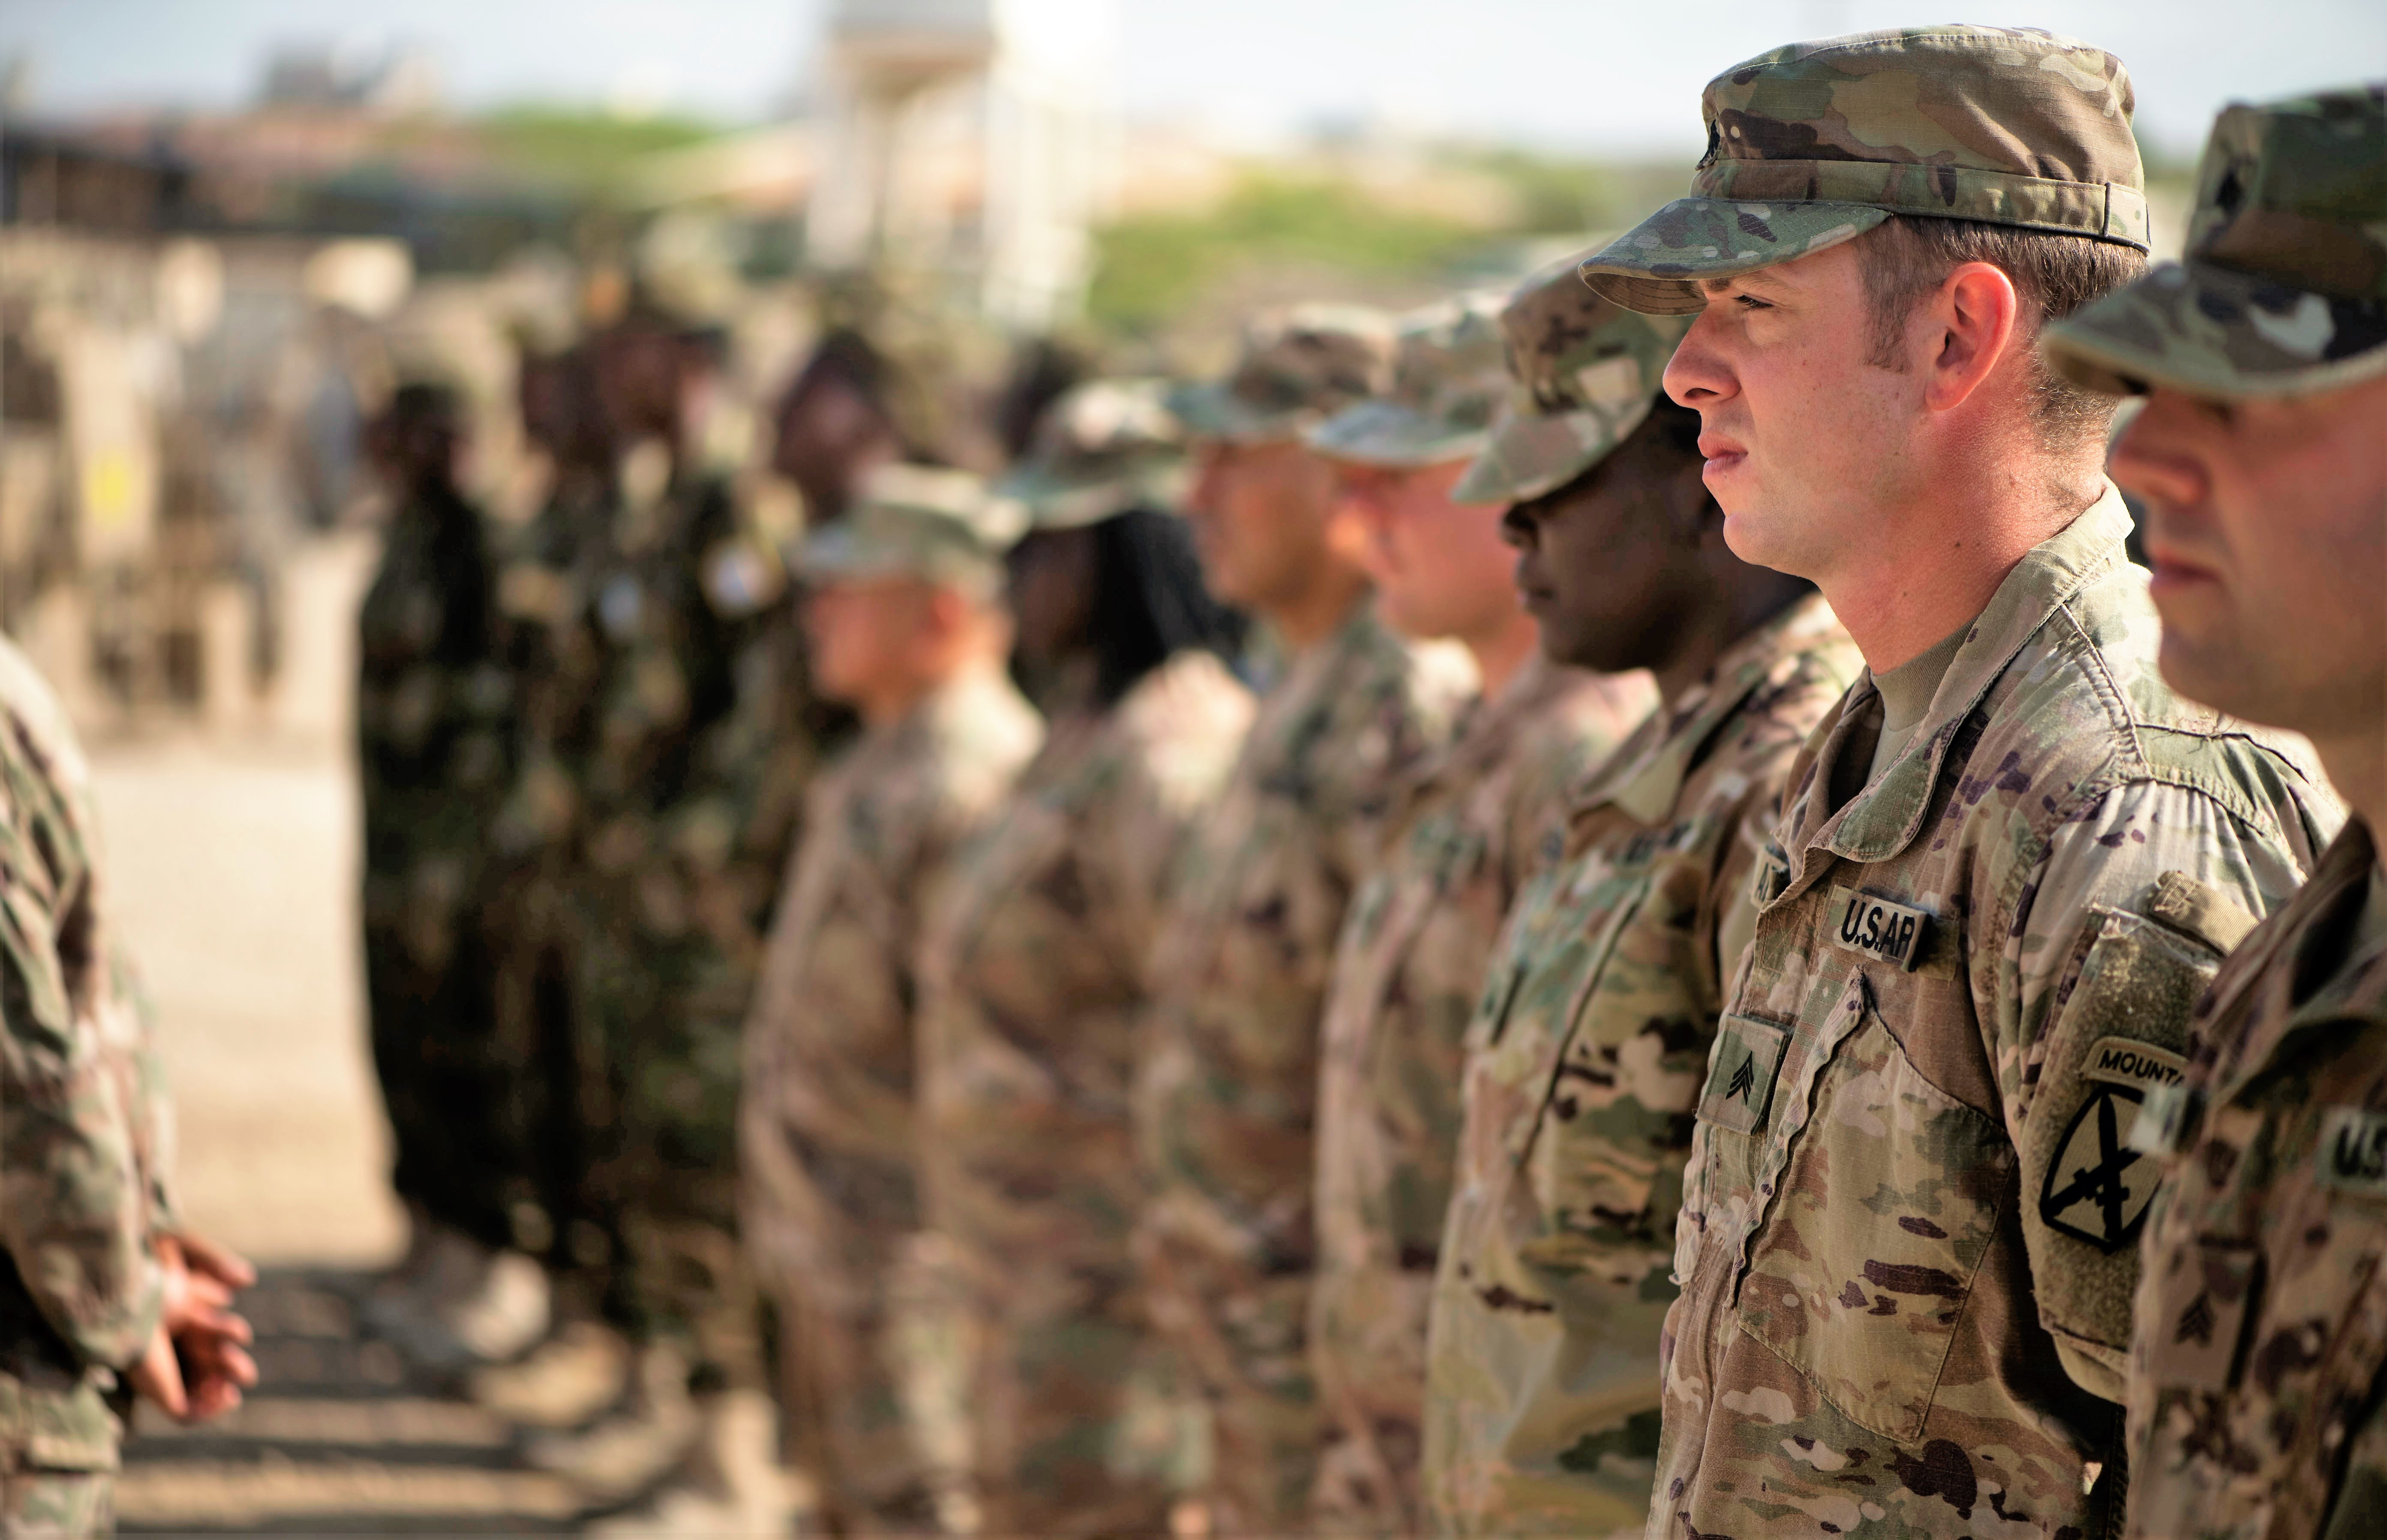 U.S. Soldiers stand in formation during a logistics course graduation ceremony.   Soldiers from Somali's special forces DANAB battalion spent 14 weeks training with the U.S. 10th Mountain division on the importance of logistical operation as well as the operation and maintenance of heavy equipment.  (Photo by MC2 (SW/AW) Evan Parker. Released)